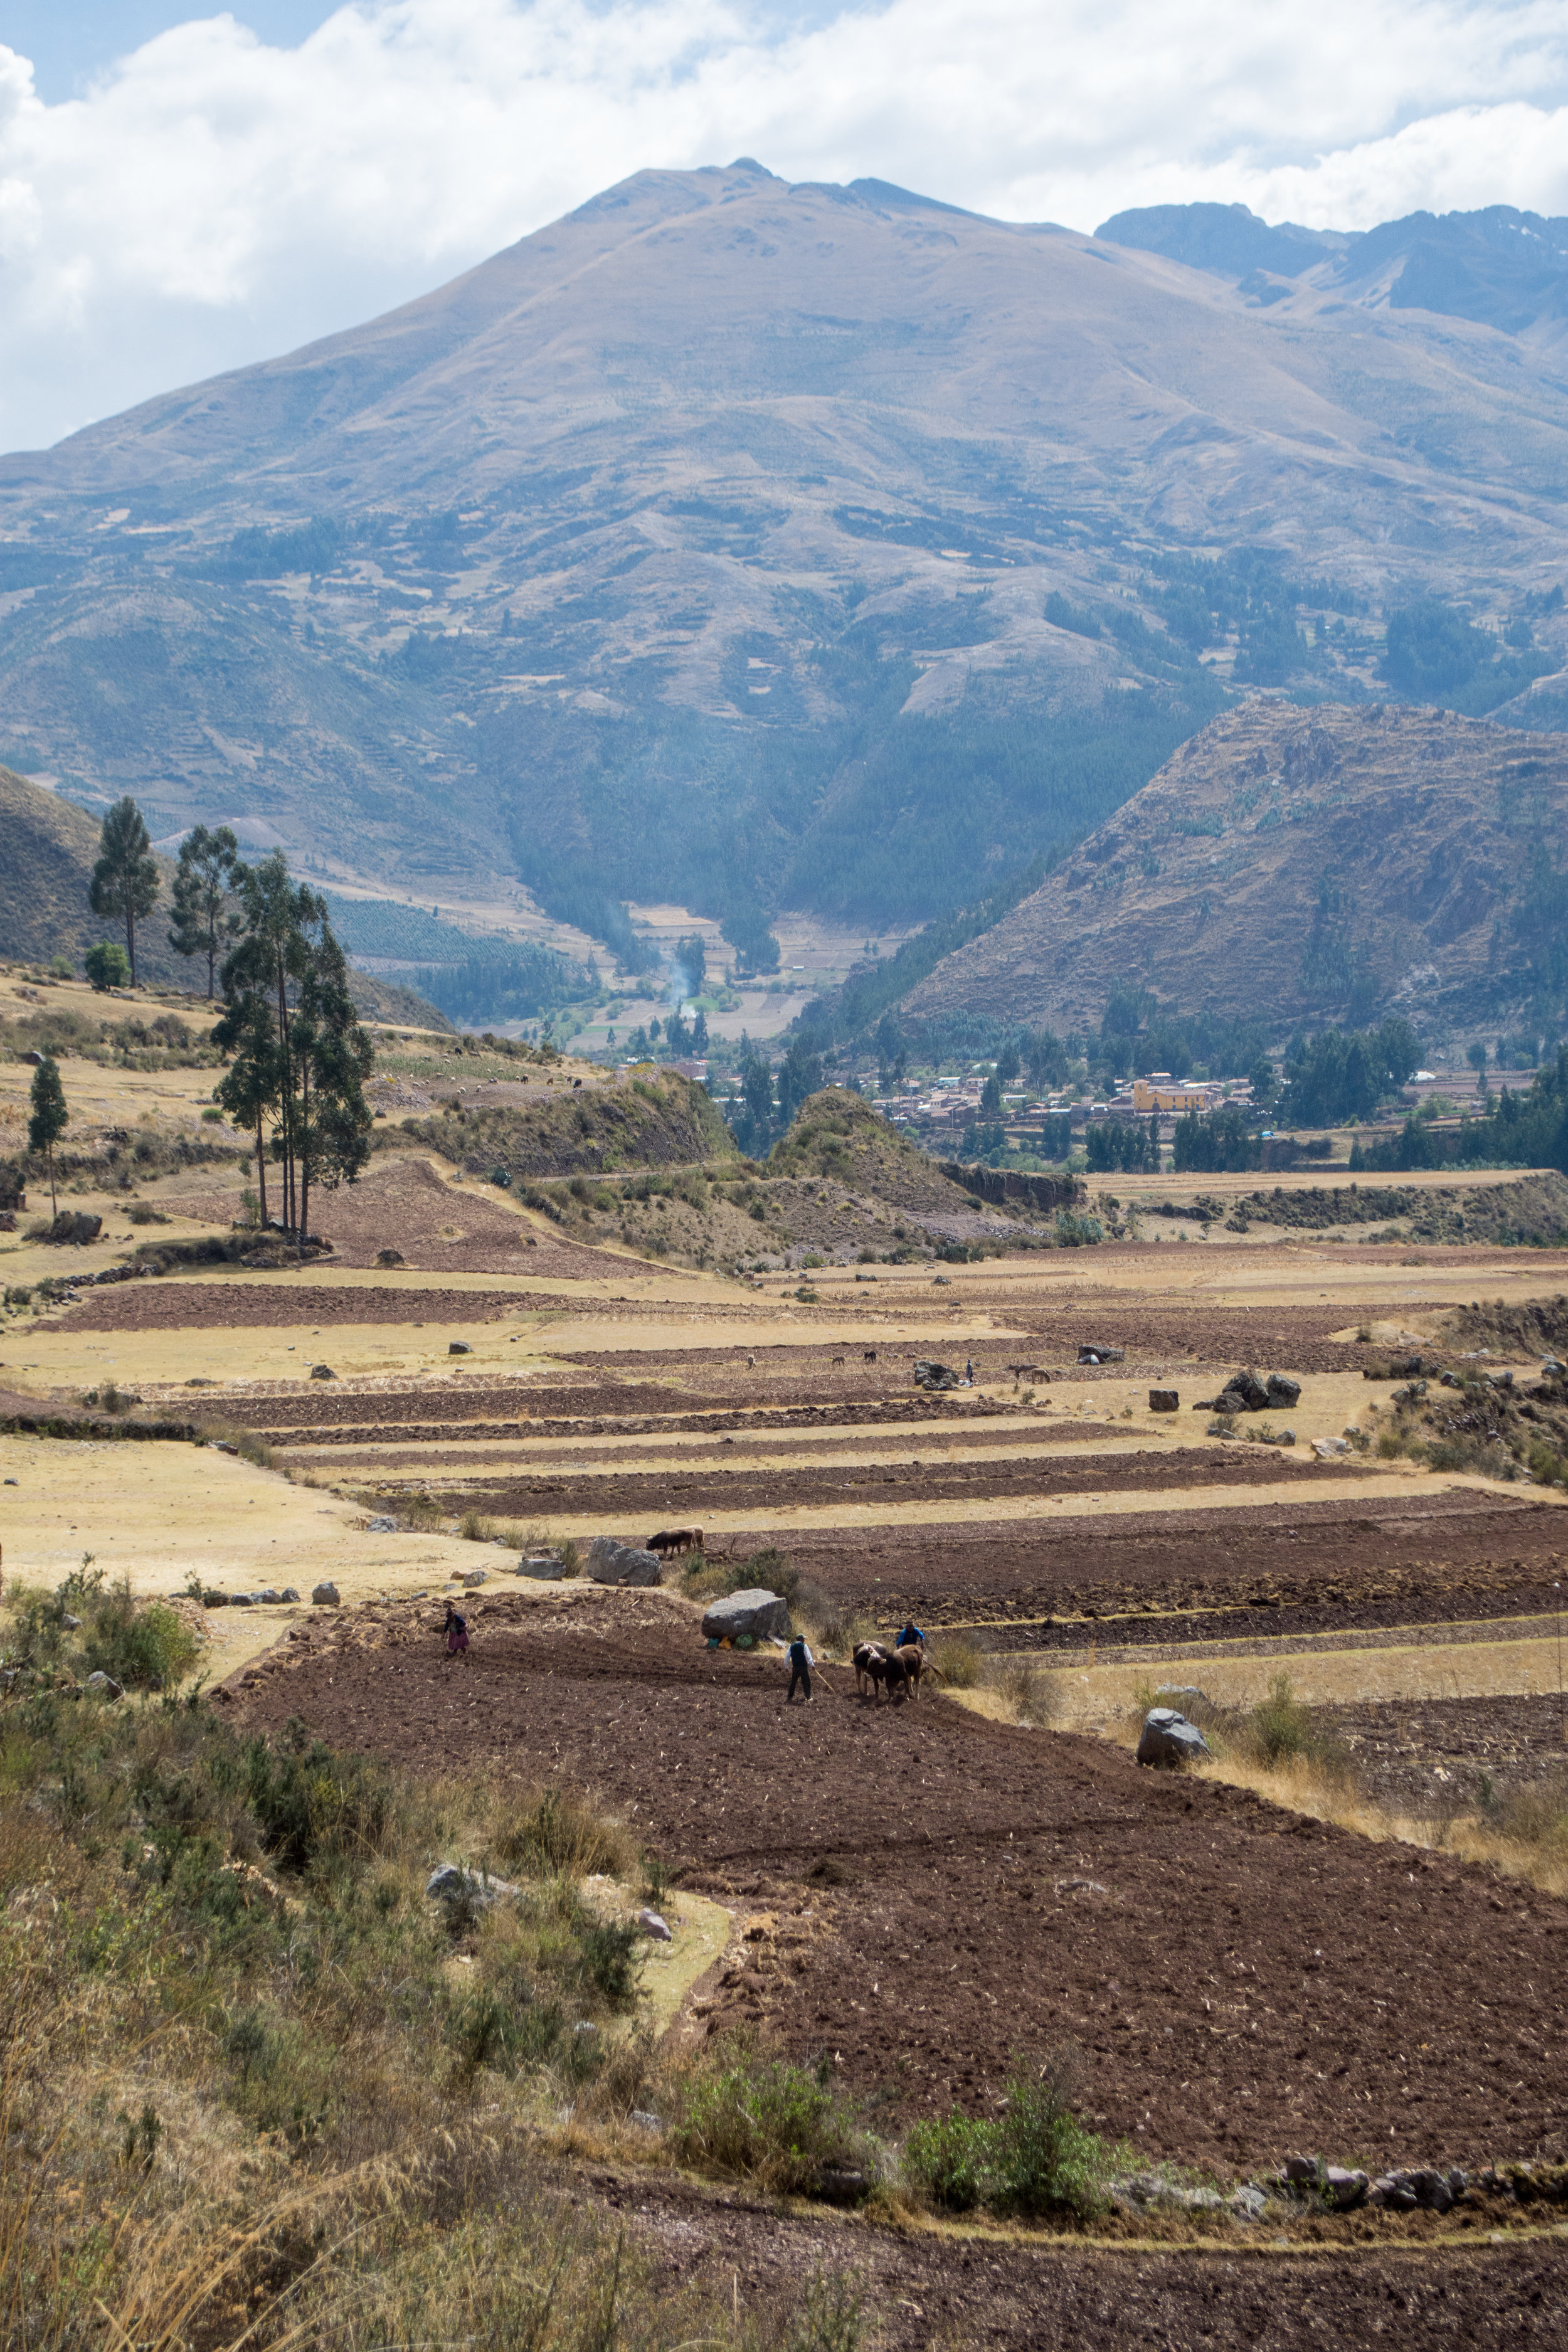 Farmers in Andean Mountains on Luxury Perurail Lake Titicaca Train